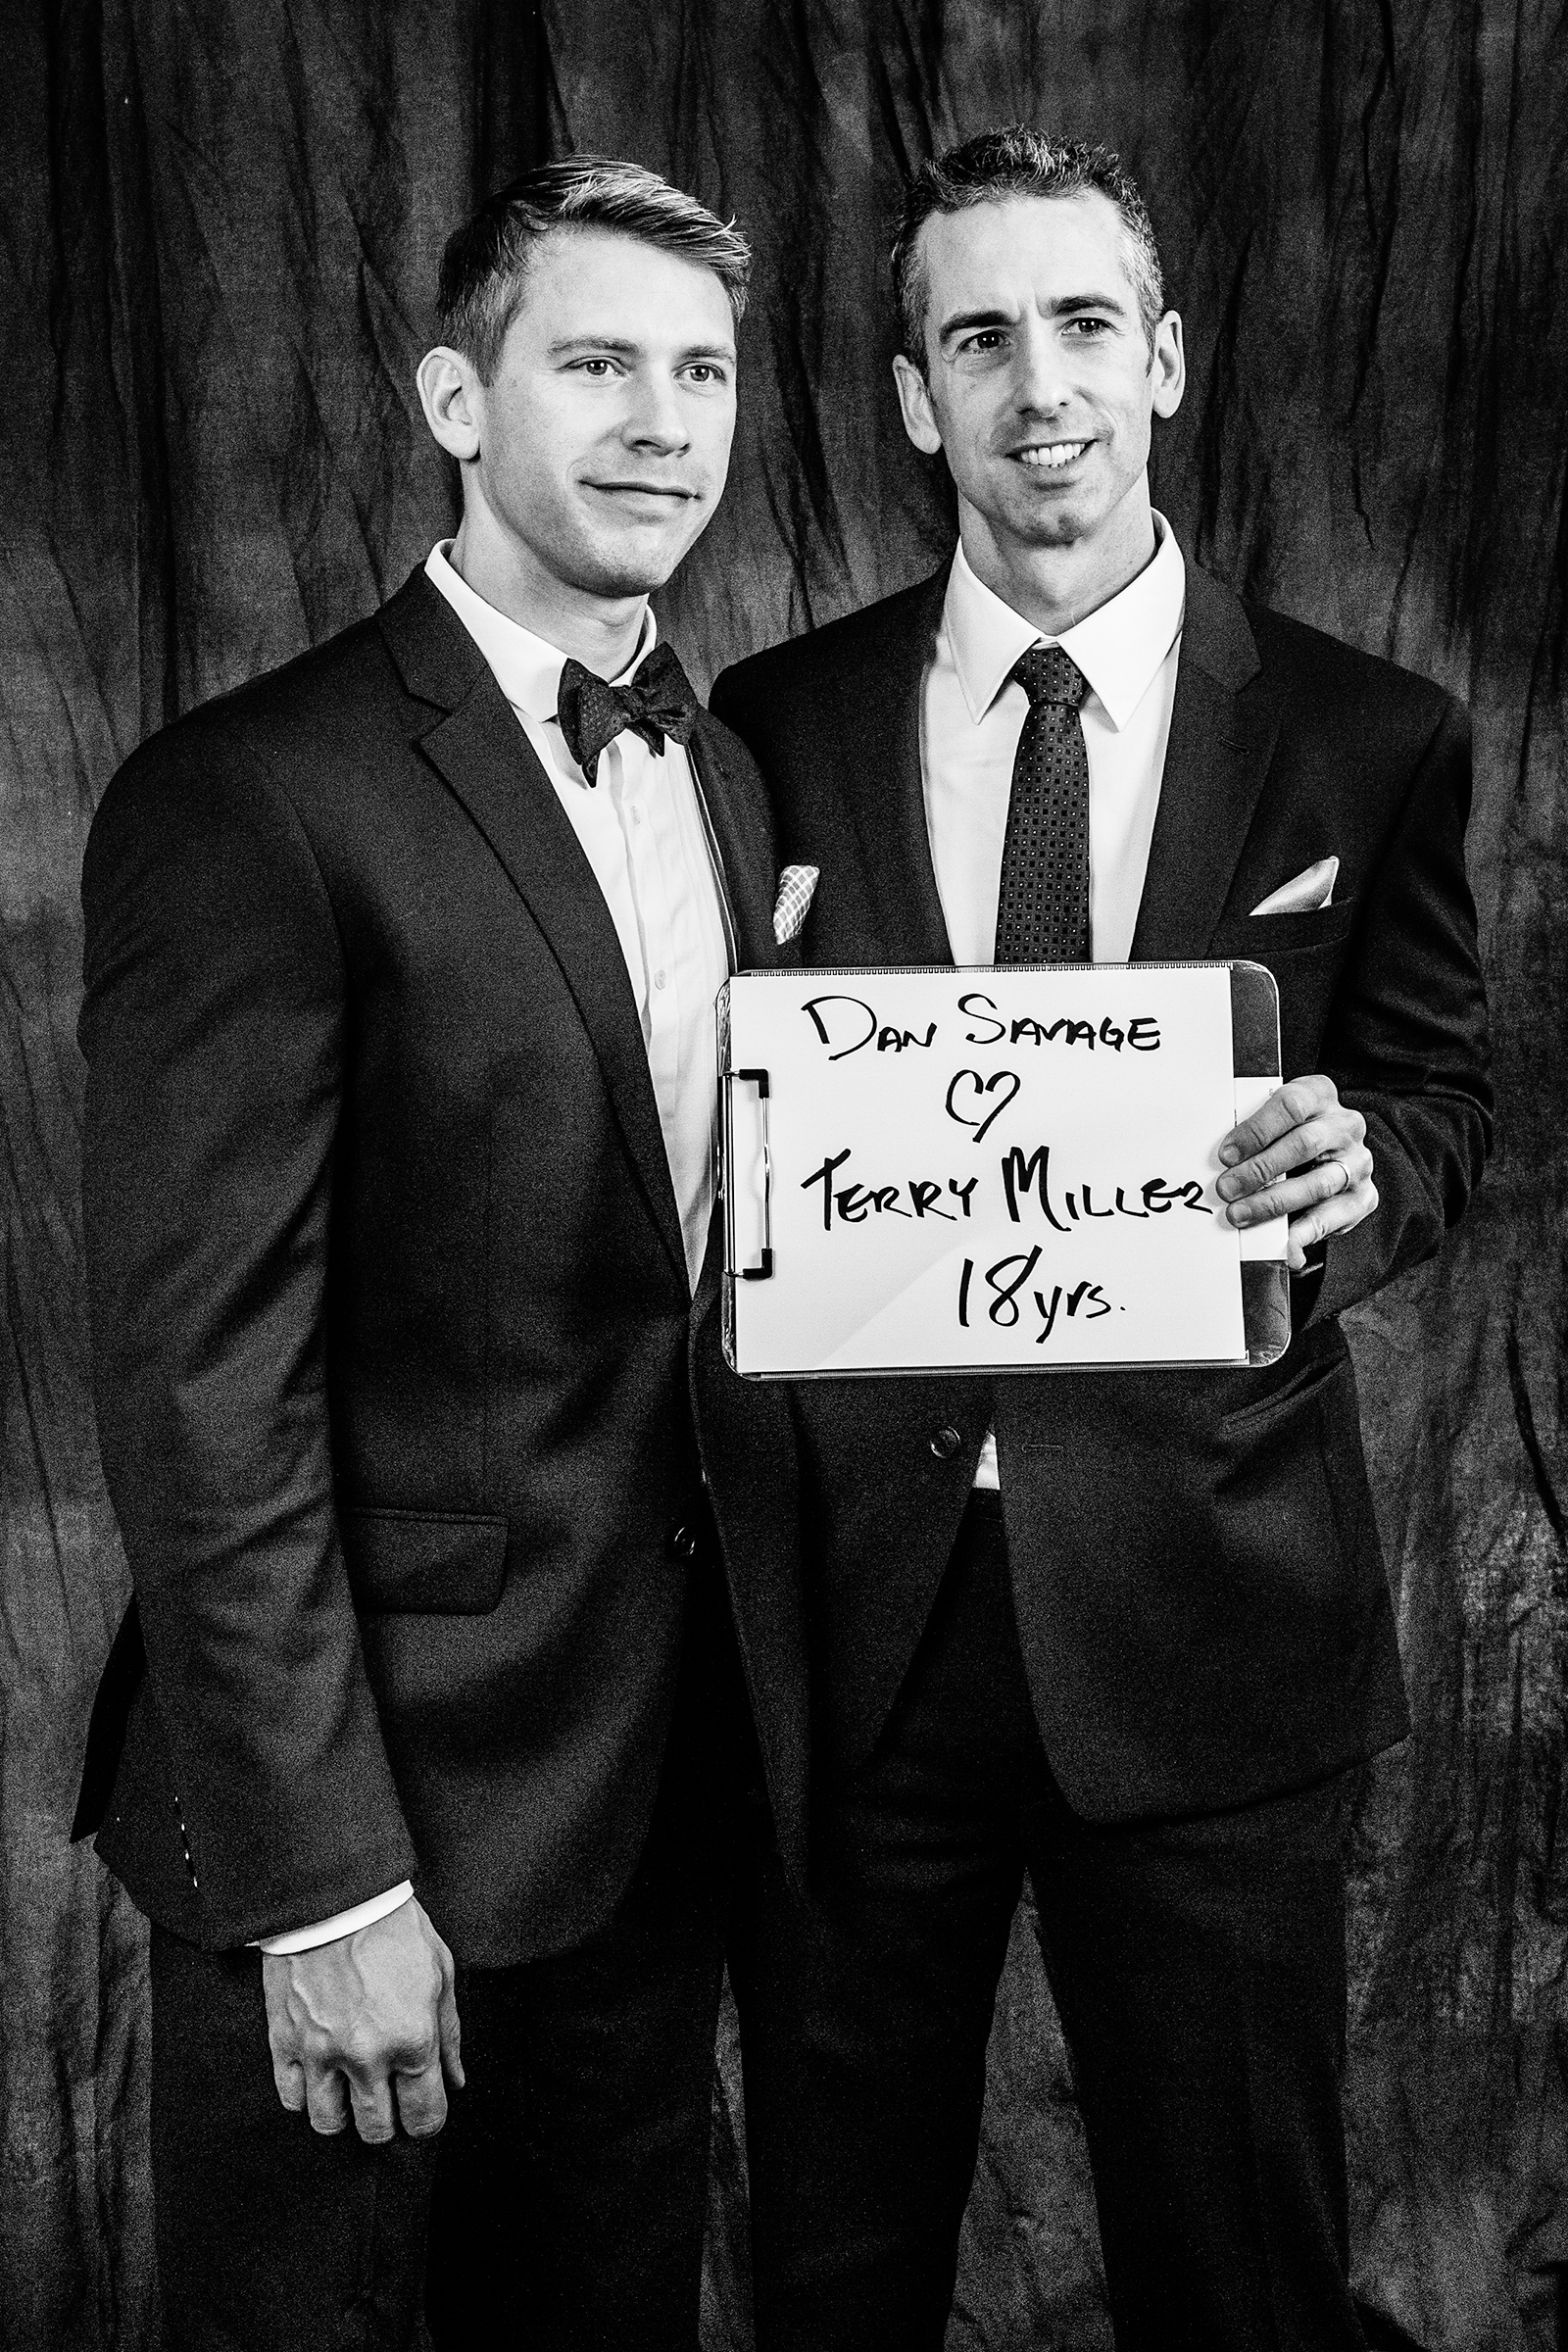 Columnist, gay rights advocate, and founder of the It Gets Better Project, Dan Savage married his partner of 18 years, Terry Miller, at Seattle City Hall on December 9th, 2012.